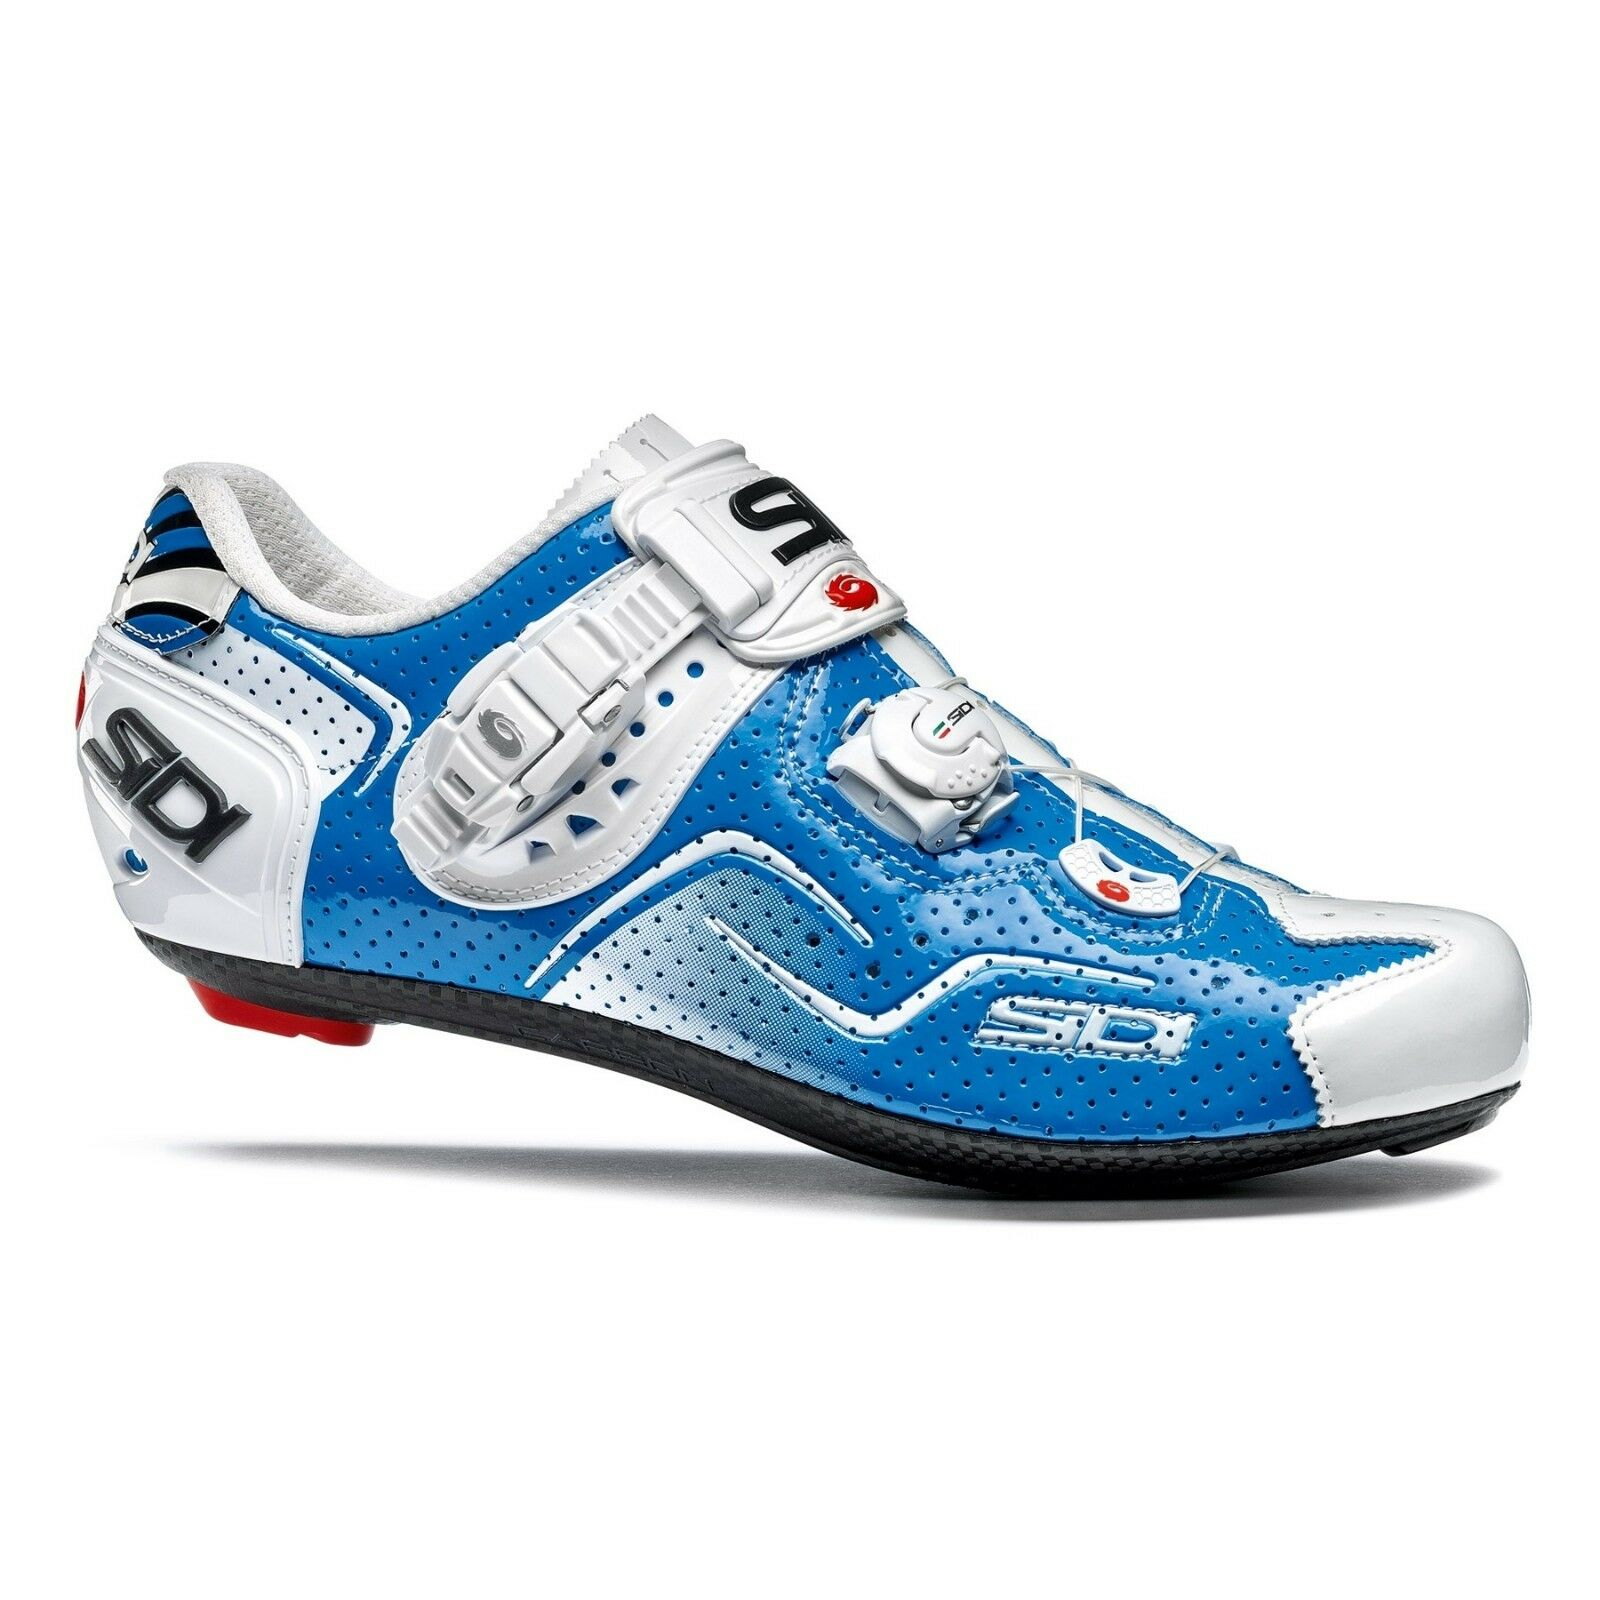 SIDI Kaos Air Road Schuhes Cycling Schuhes Bike Bicycle Schuhes Road Blau/Weiß Größe 36-46 EUR 9a76d7